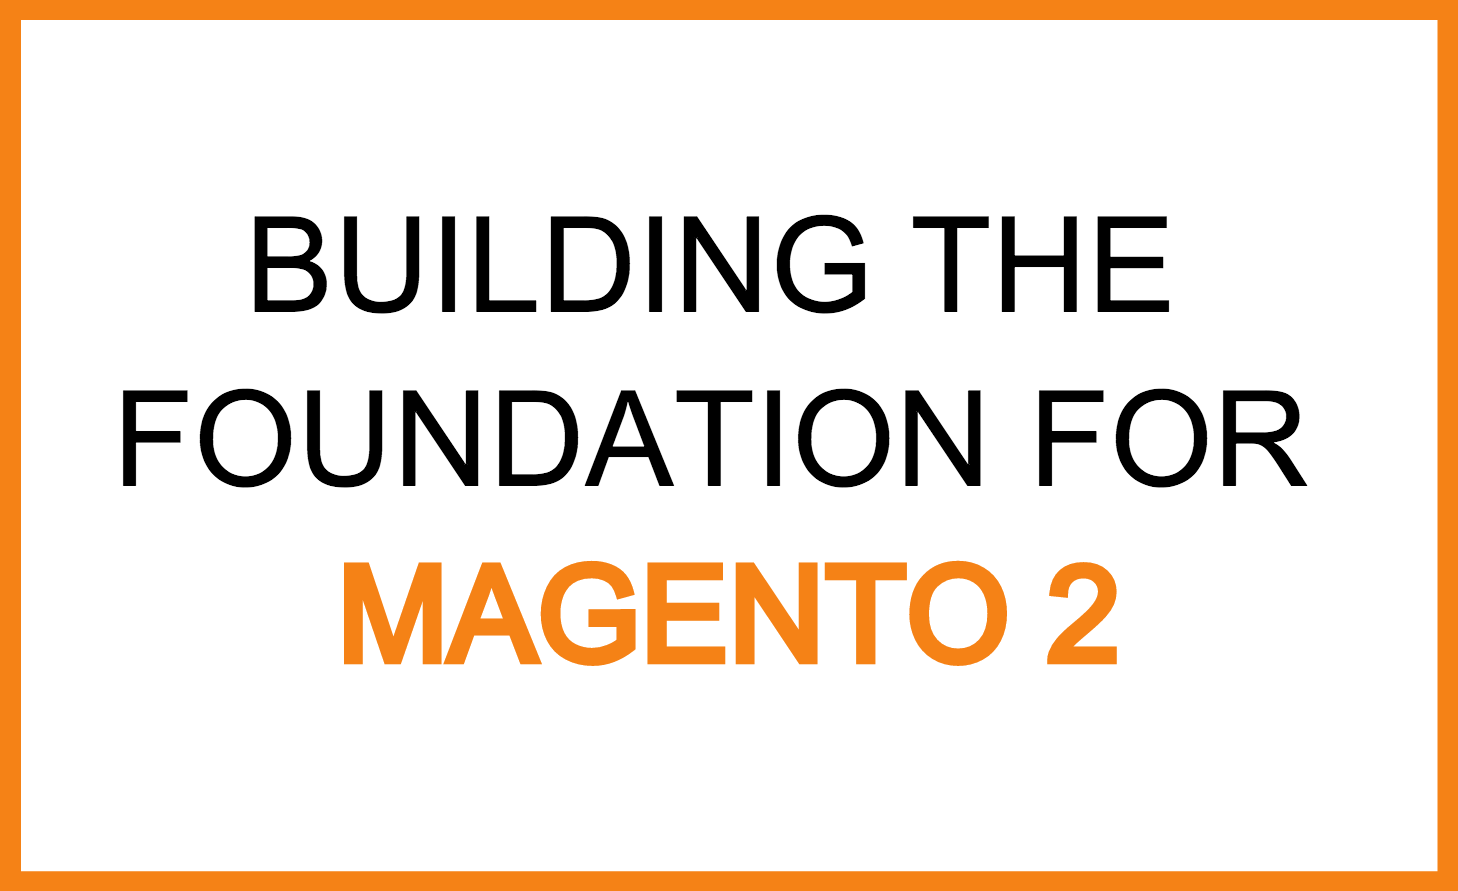 magento 2 foundation.png